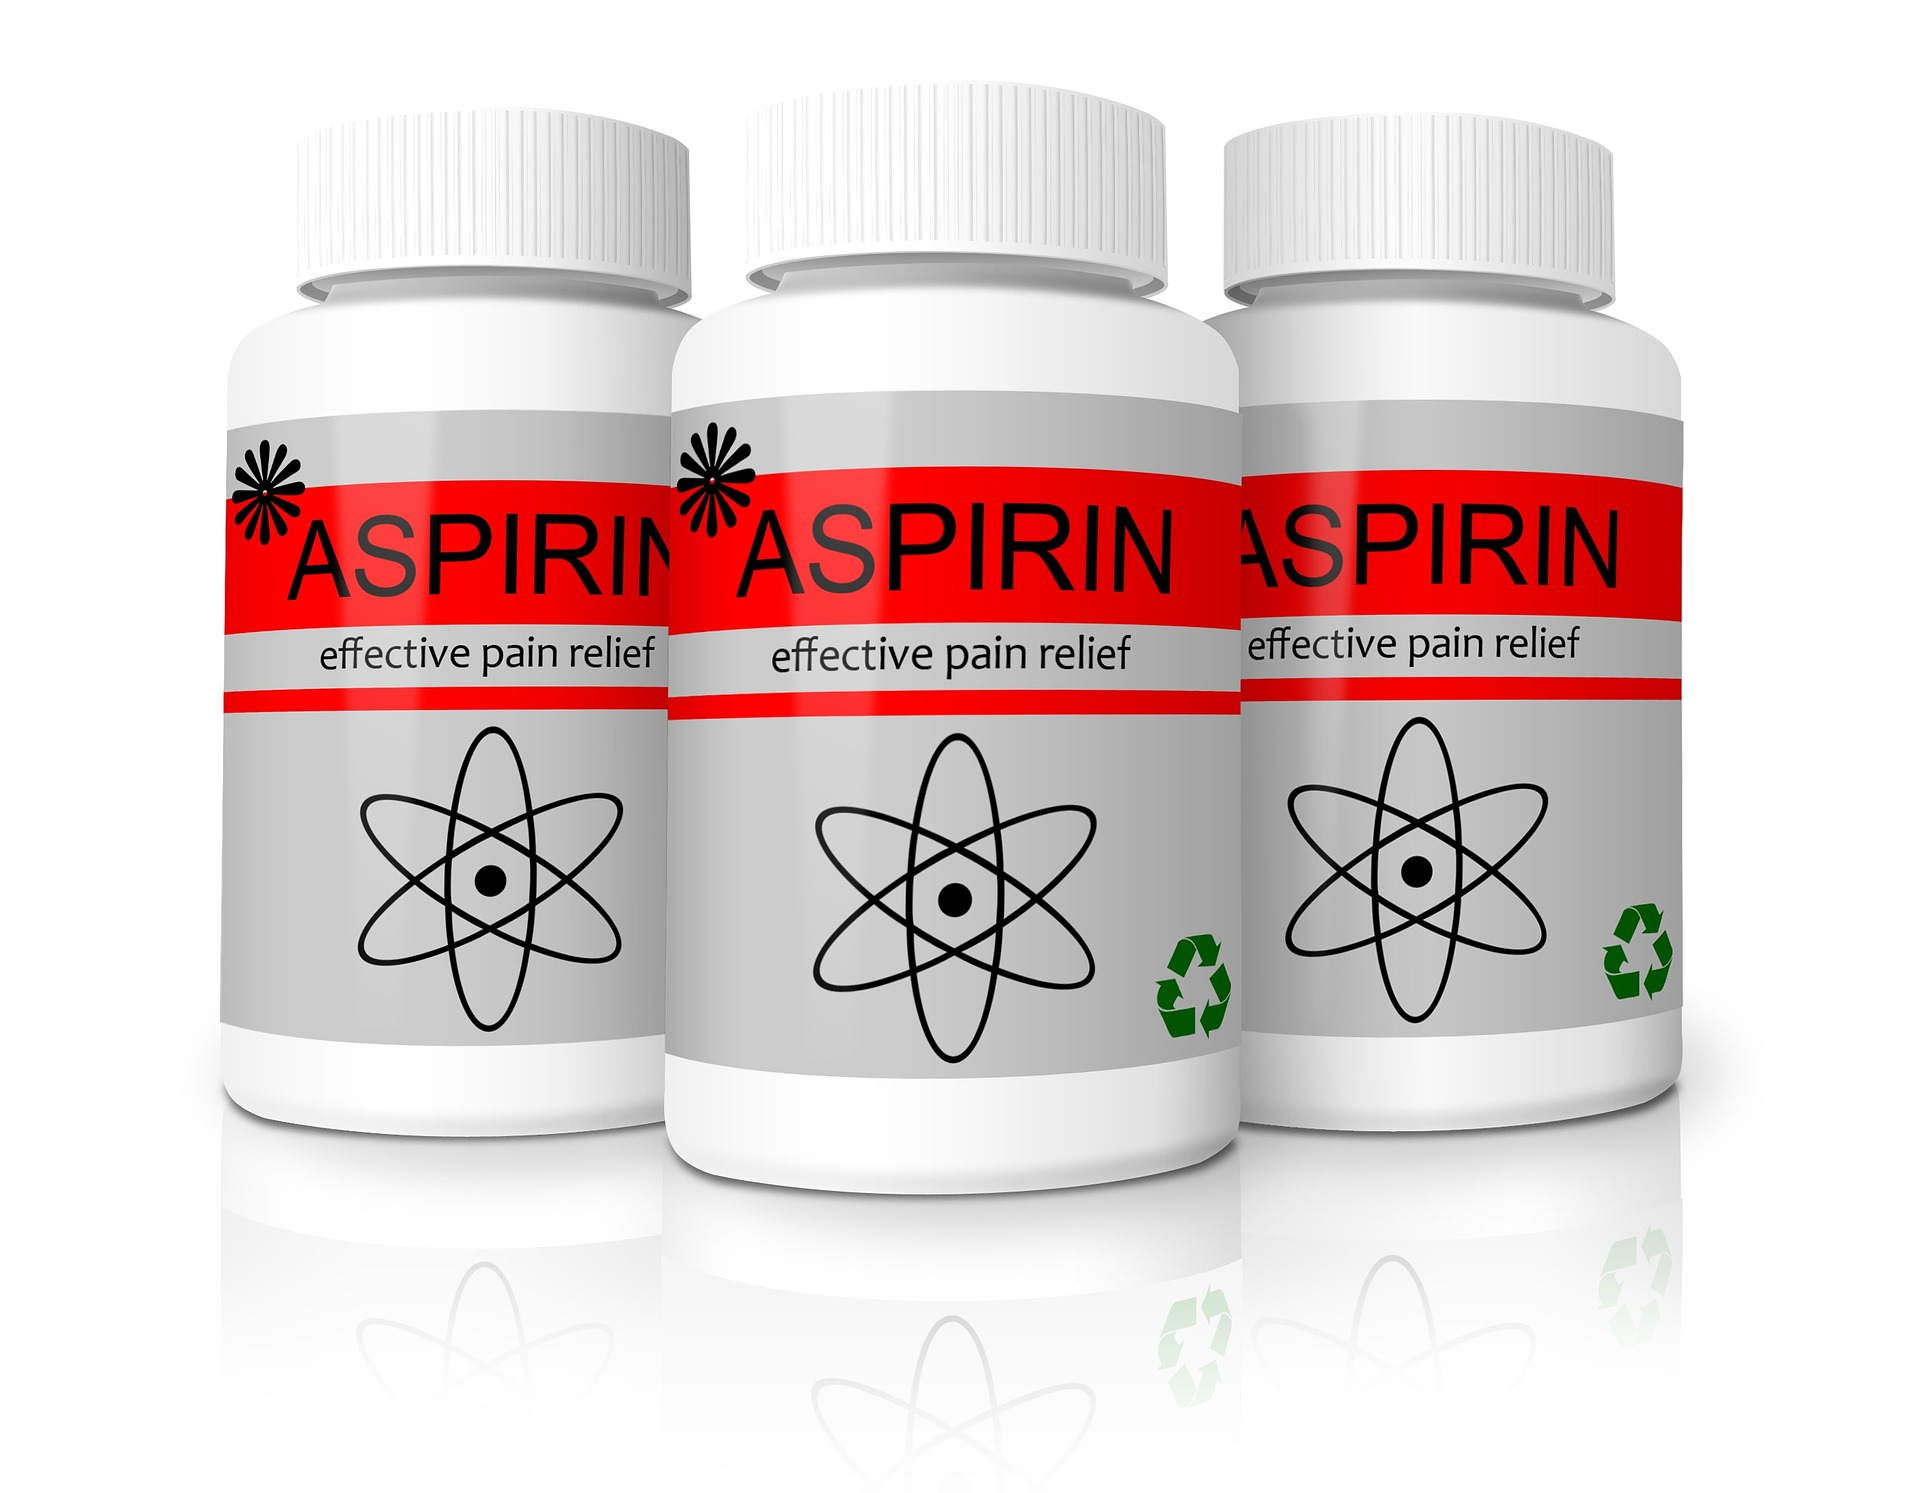 AHA No Longer Recommends Daily Aspirin for Heart Health